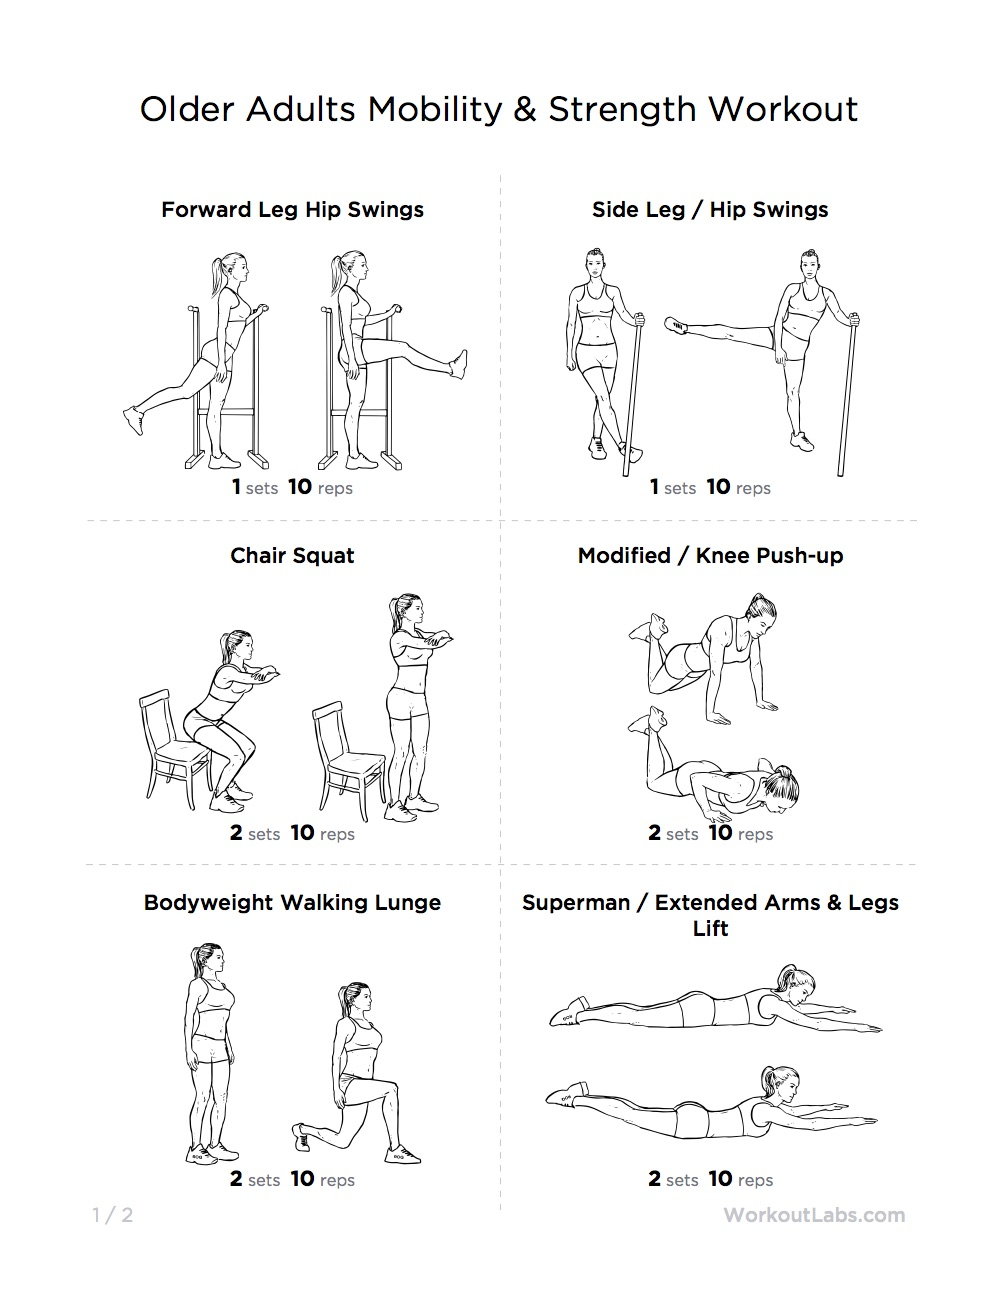 Balance exercise for older adults